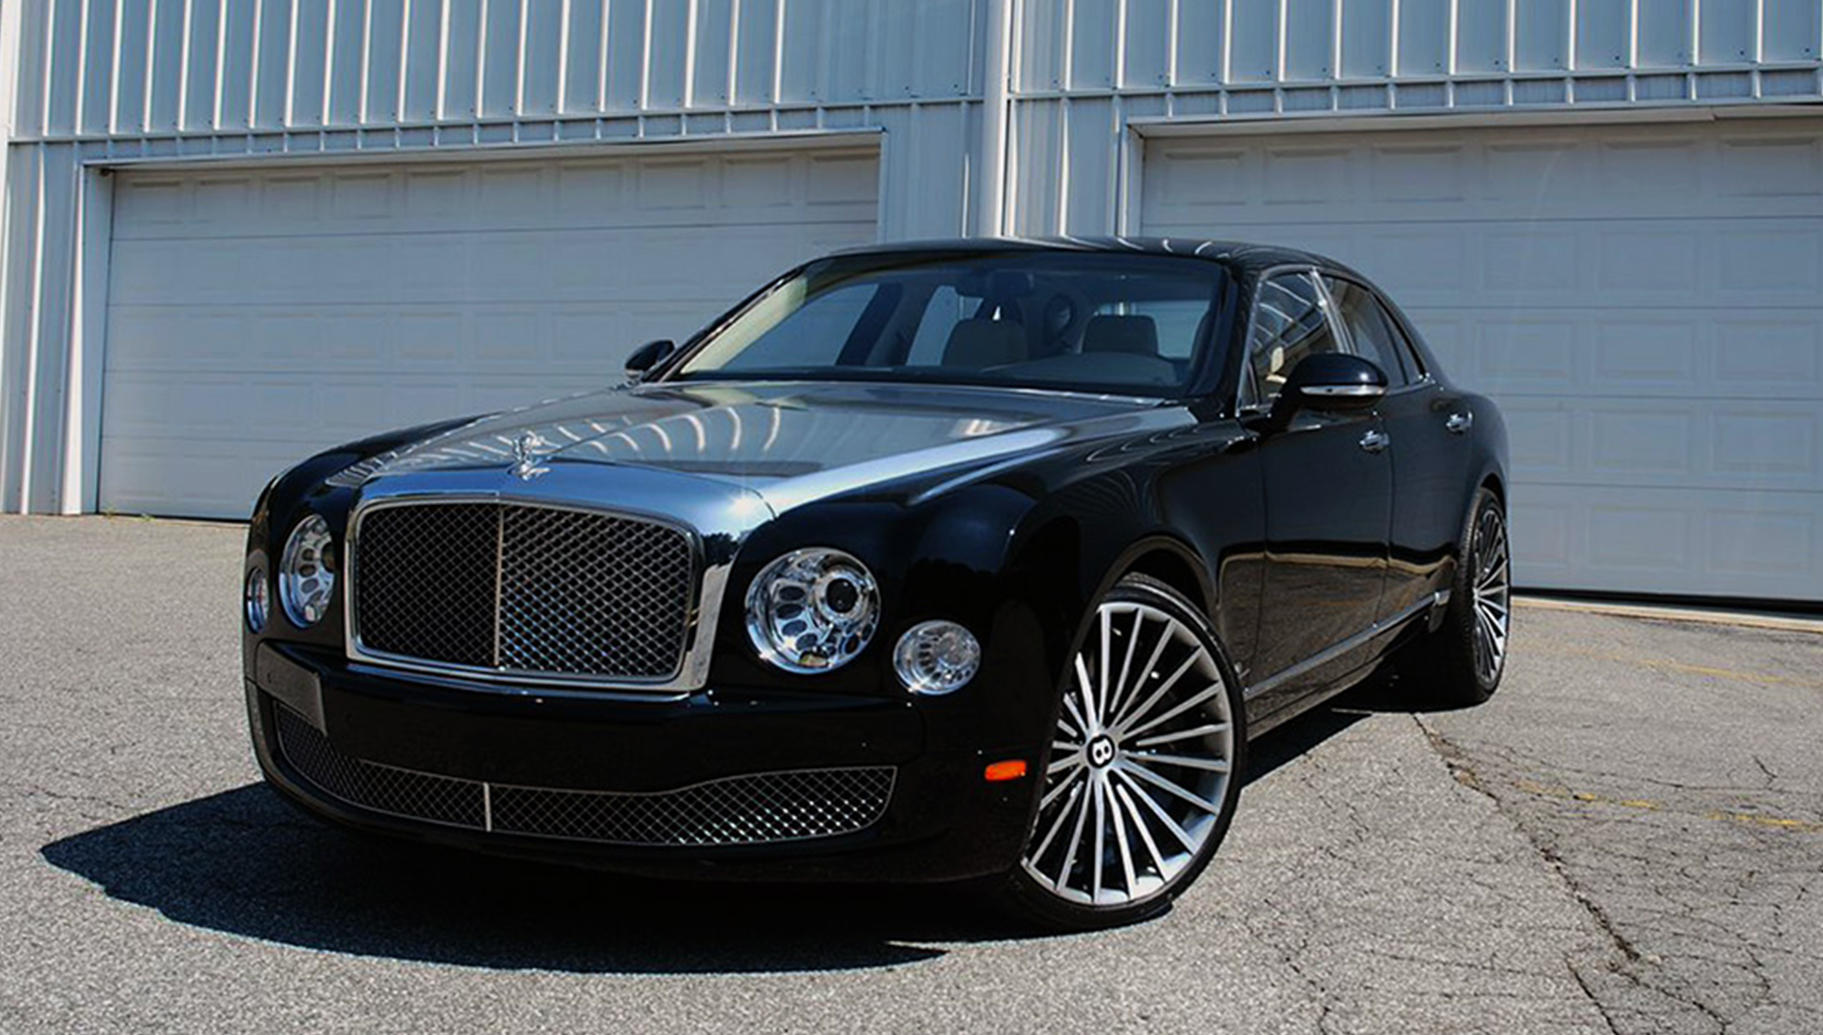 Piroq+Reseptleri bentley mulsanne with custom rims Car Pictures